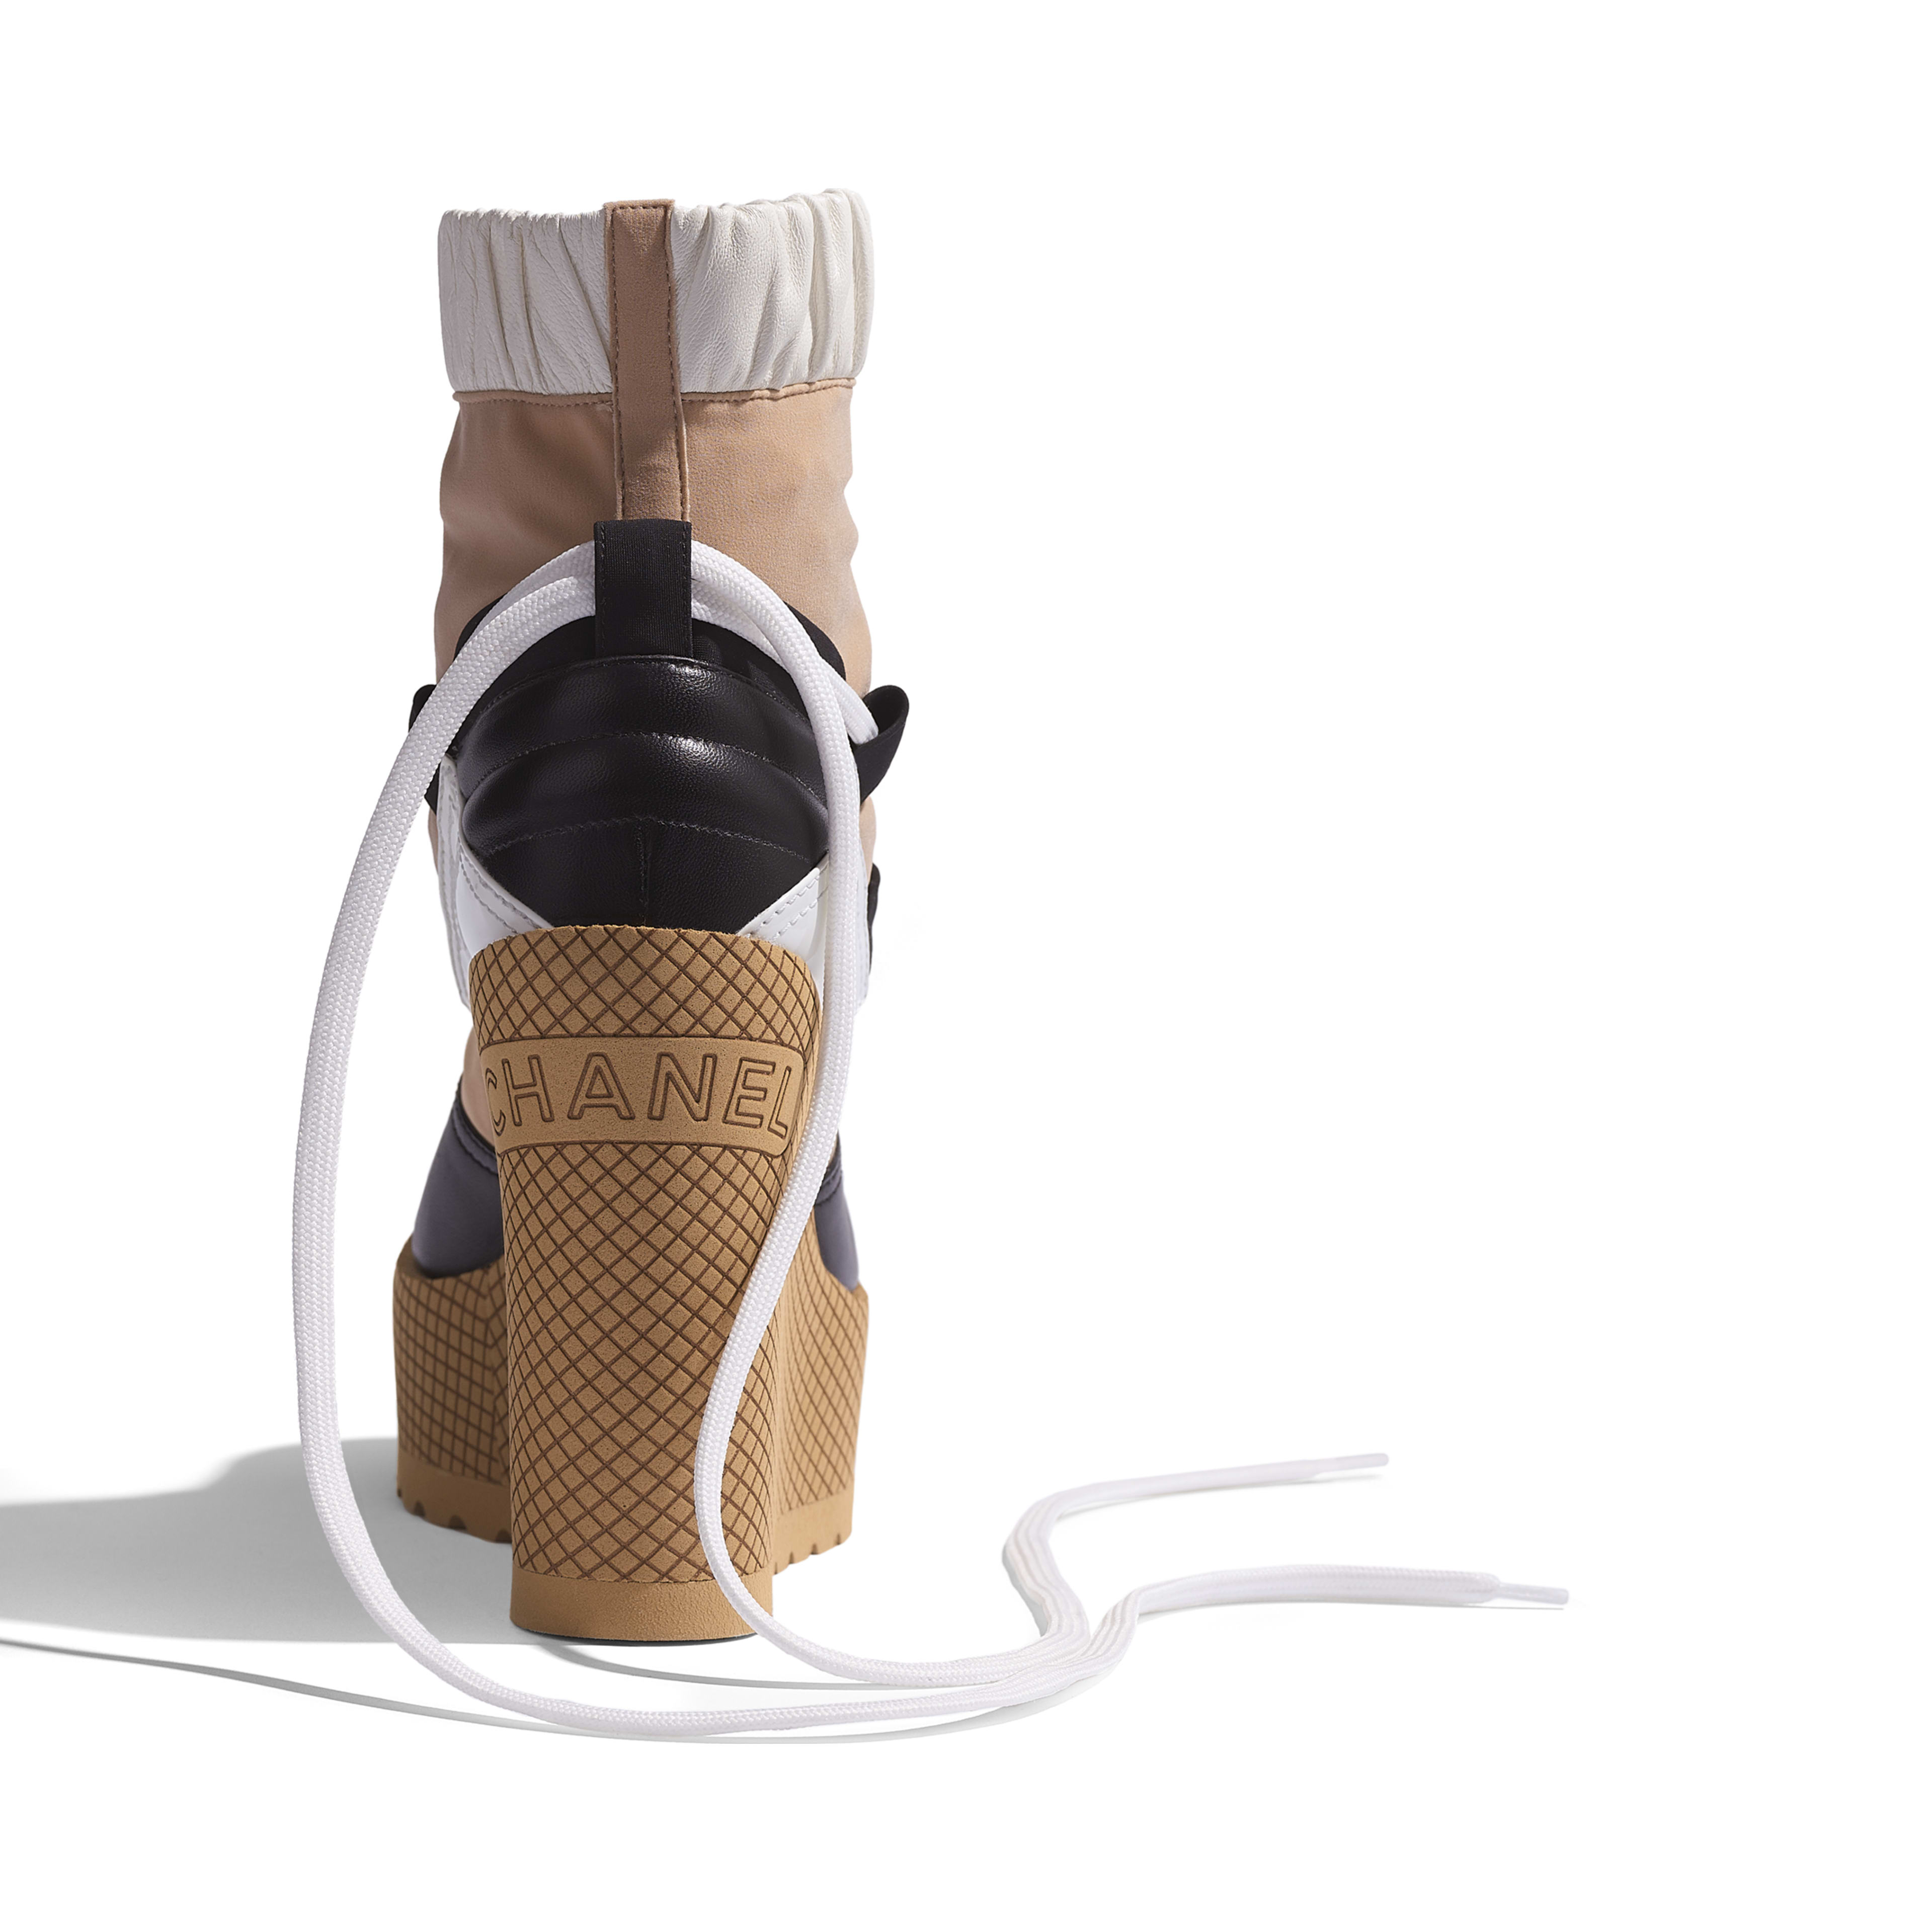 Lace-Ups - Beige, Black & White - Mixed Fibers, Lambskin & Calfskin - Extra view - see full sized version